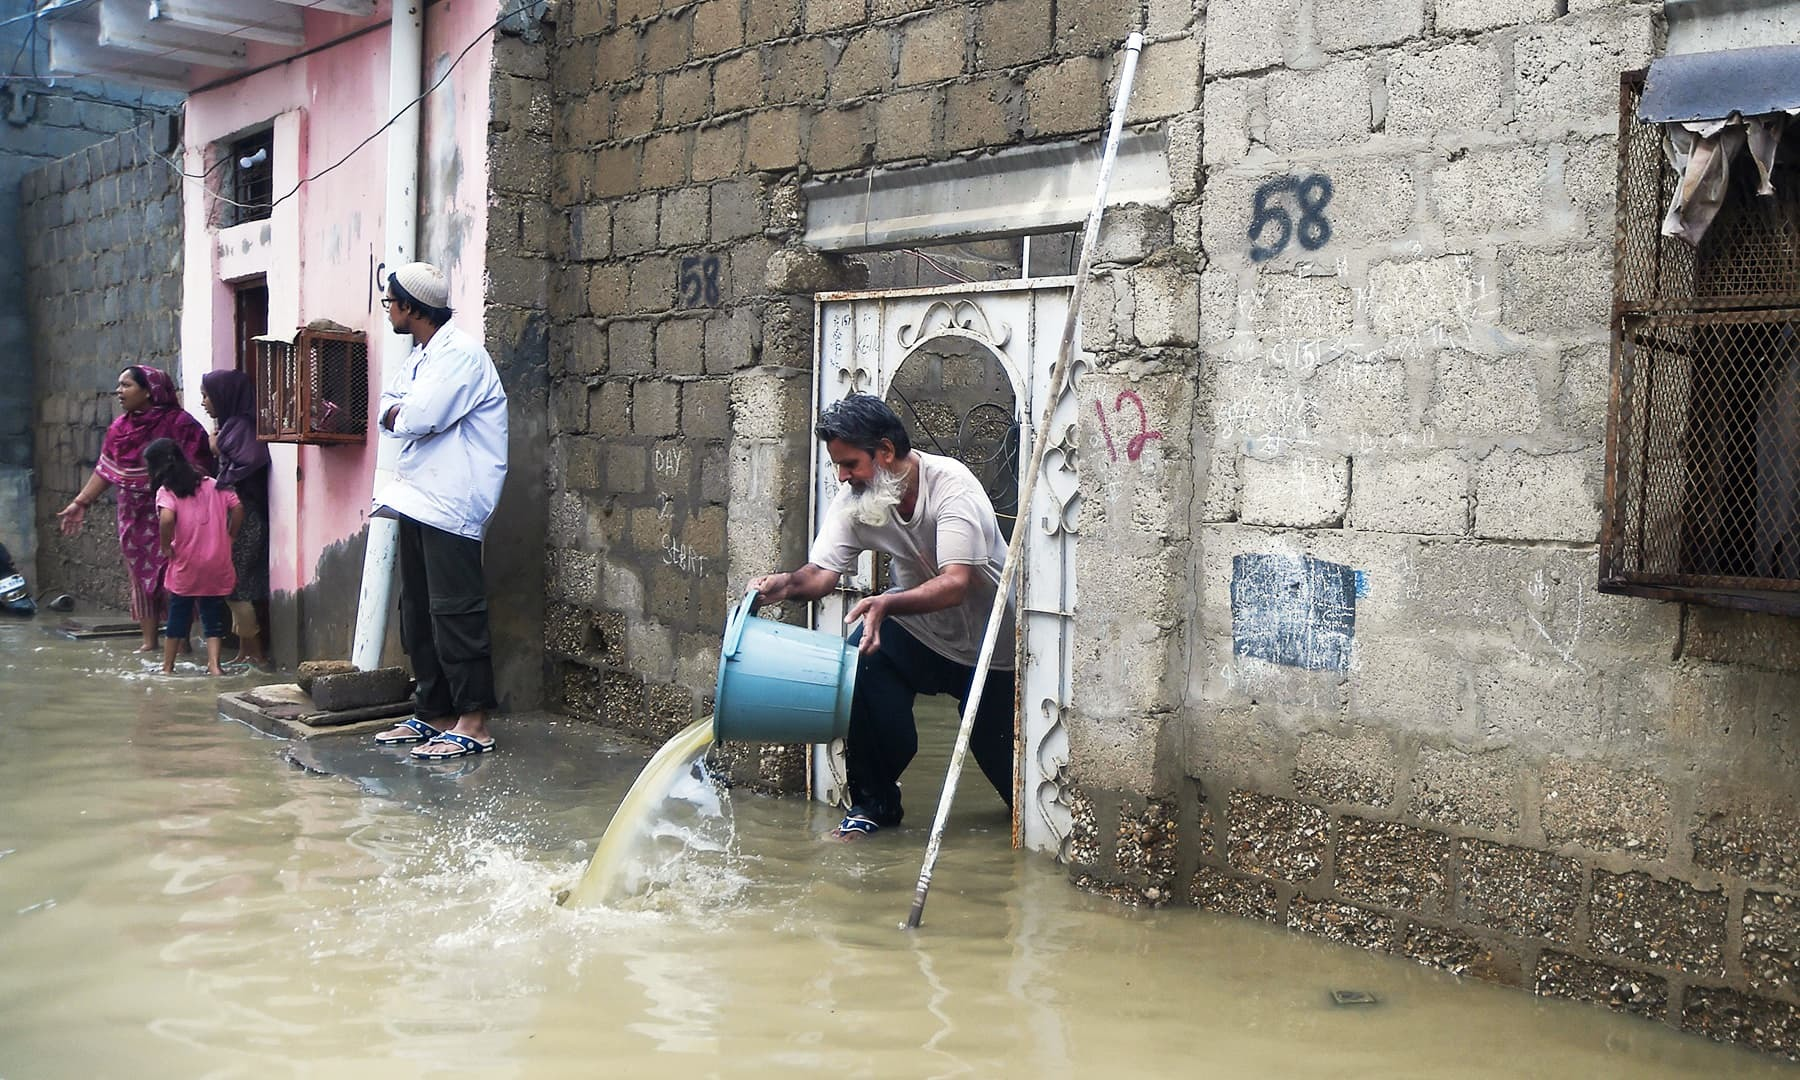 A resident removes rains water from his house during heavy monsoon rains in Karachi on July 30, 2019. (Photo by ASIF HASSAN / AFP) — AFP or licensors